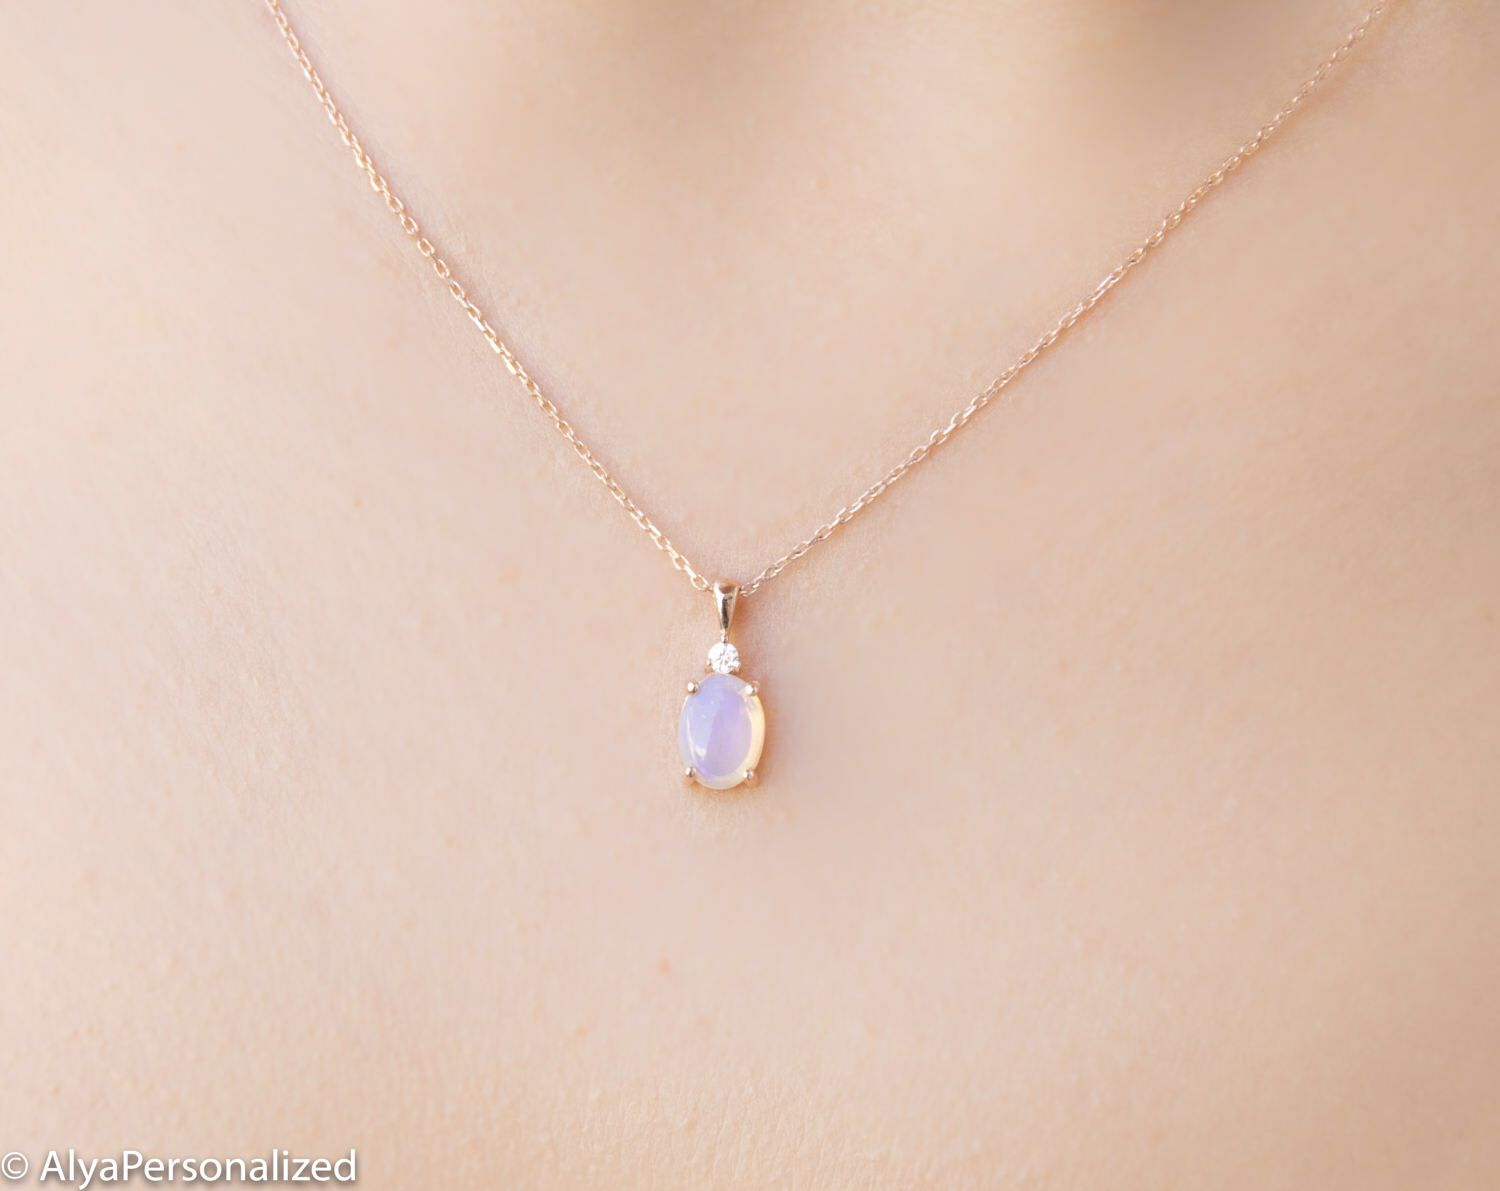 920e88b6b Moonstone Necklace - Rose Gold Minimalist Necklace - Simple Necklace - Pendant  Necklace - Minimalist Jewelry - Delicate Charm Necklace